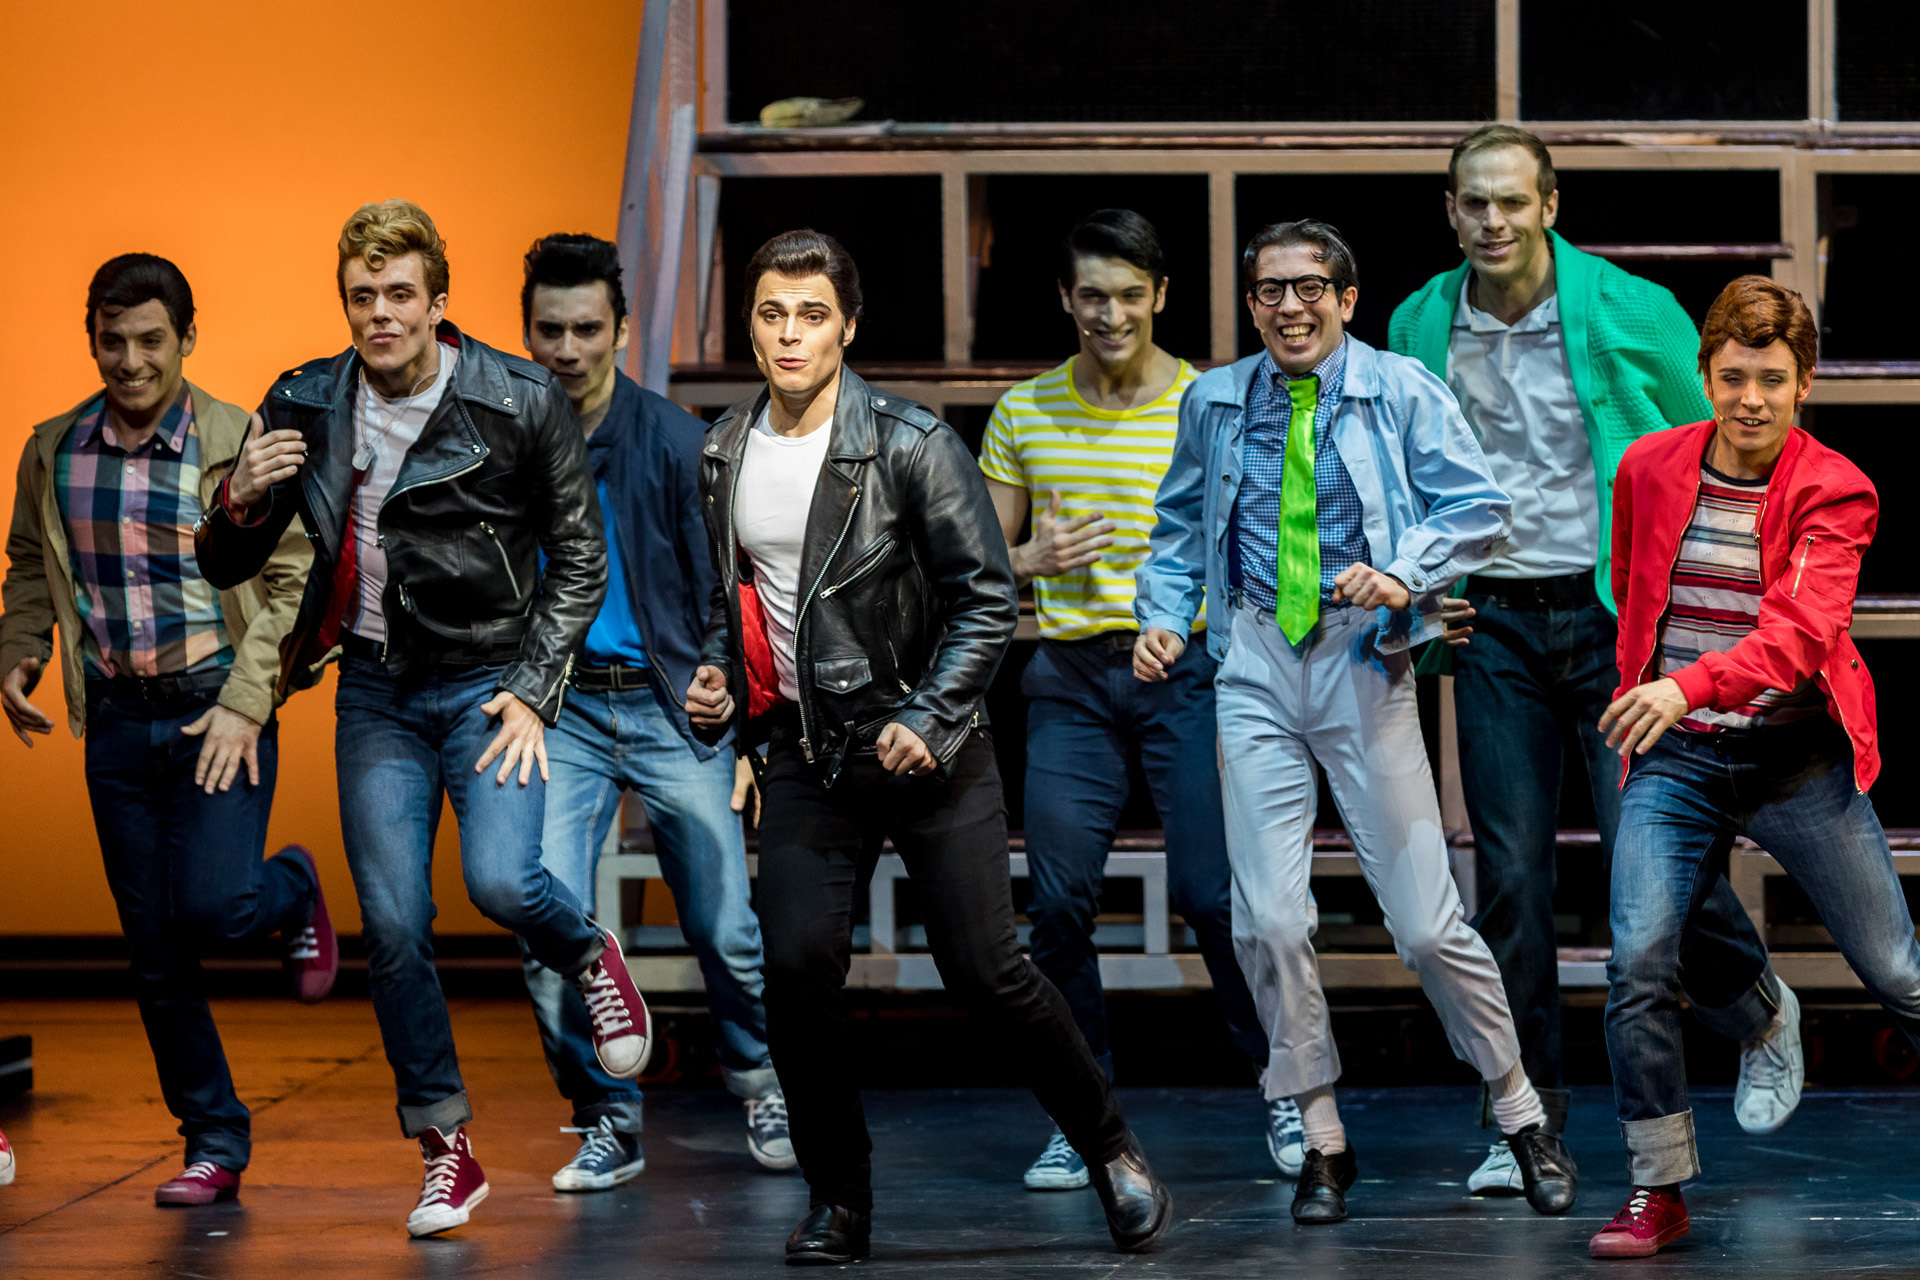 2017_03_08_Grease_213640_7D2_6965